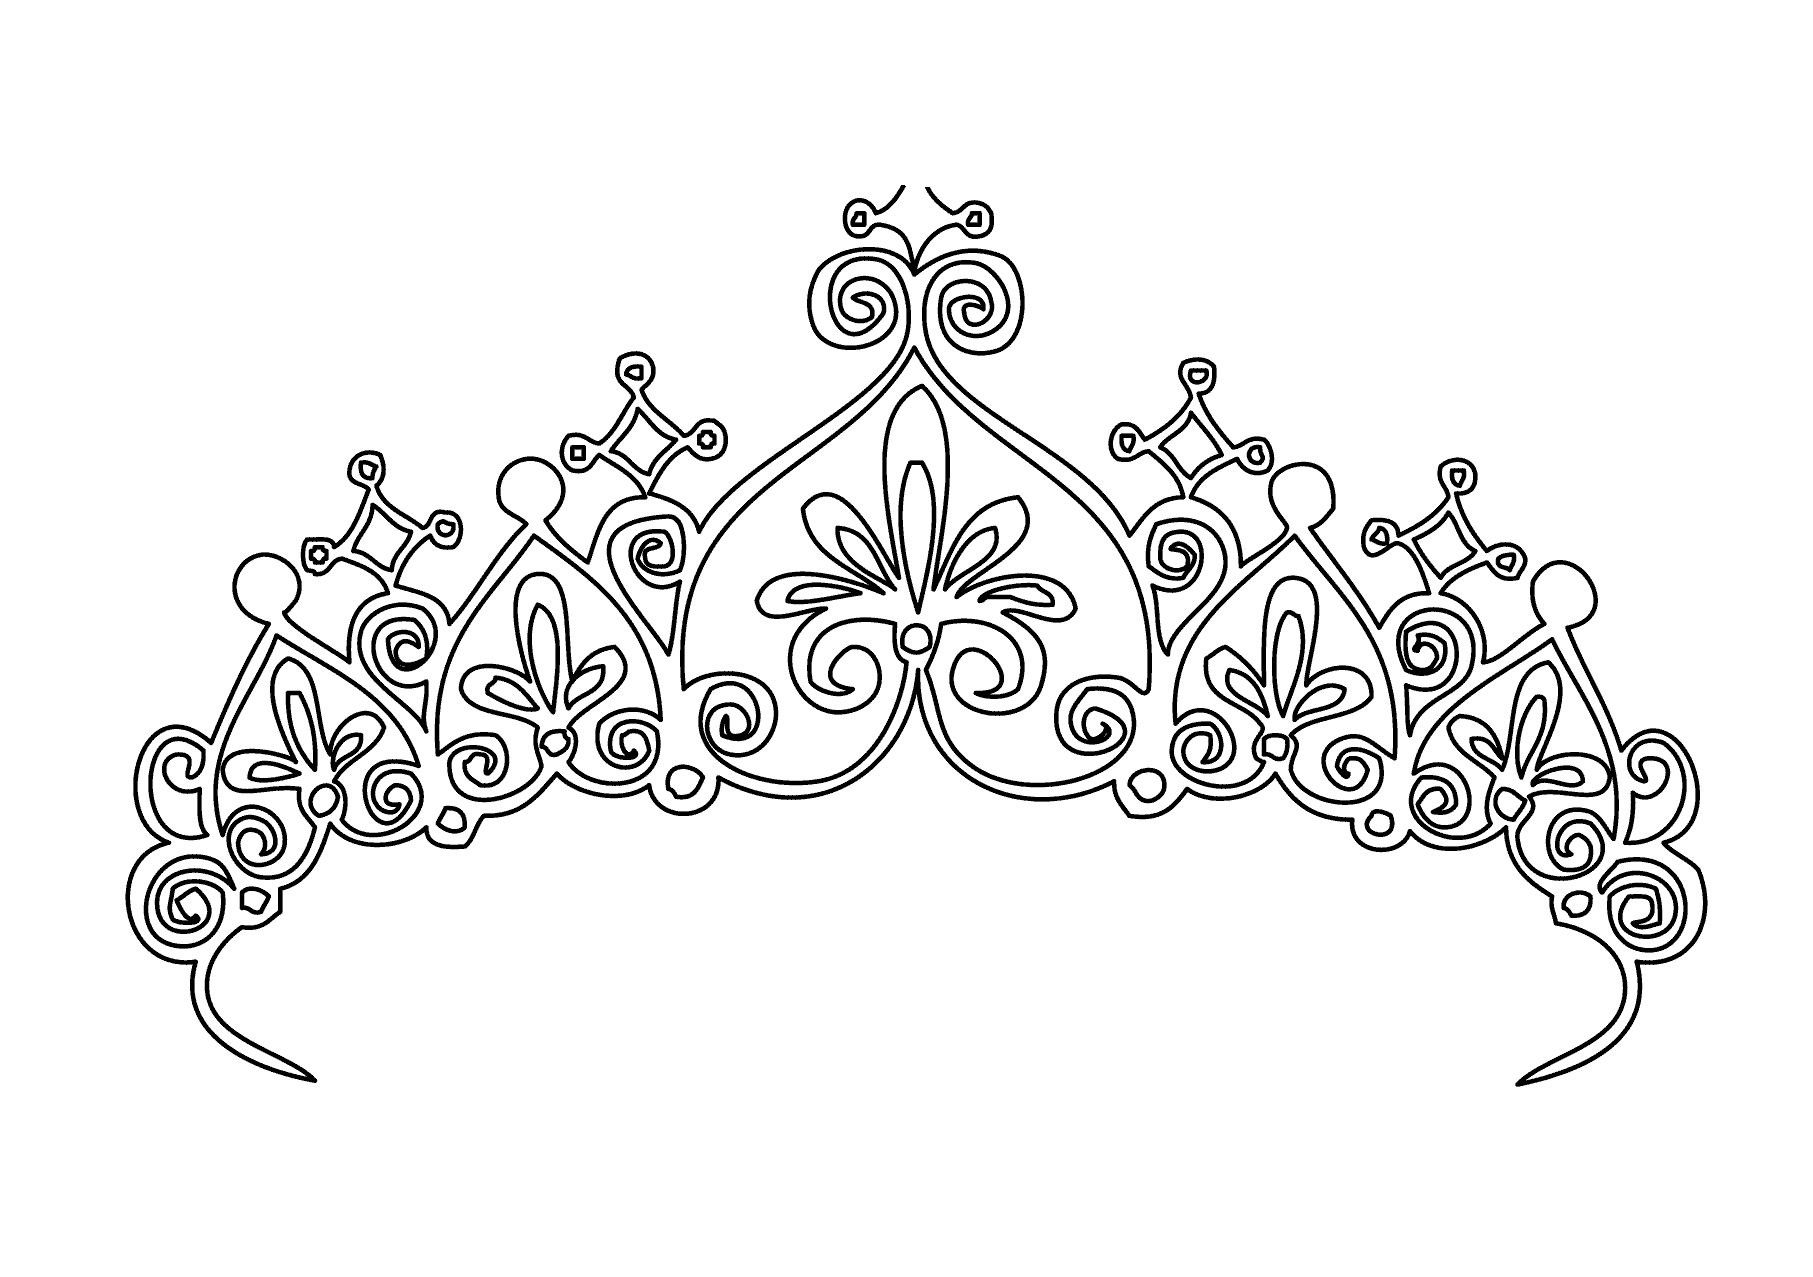 Princess Crown Coloring Pages Printable Through The Thousand